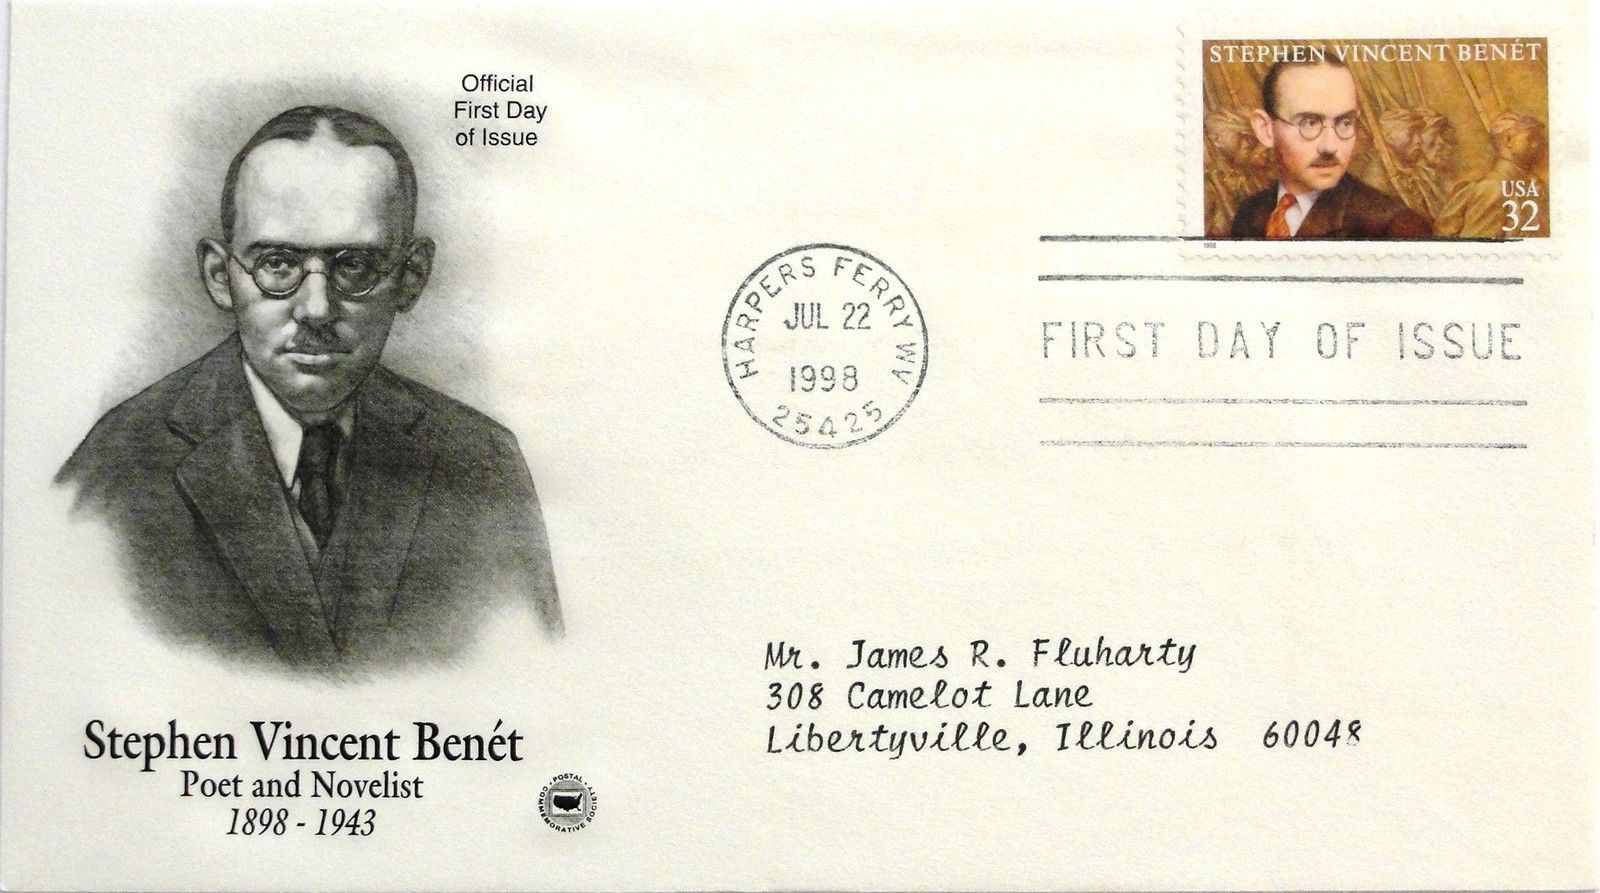 July 22, 1998 First Day of Issue, PC Society Covers, Stephen Vincent Benet #26